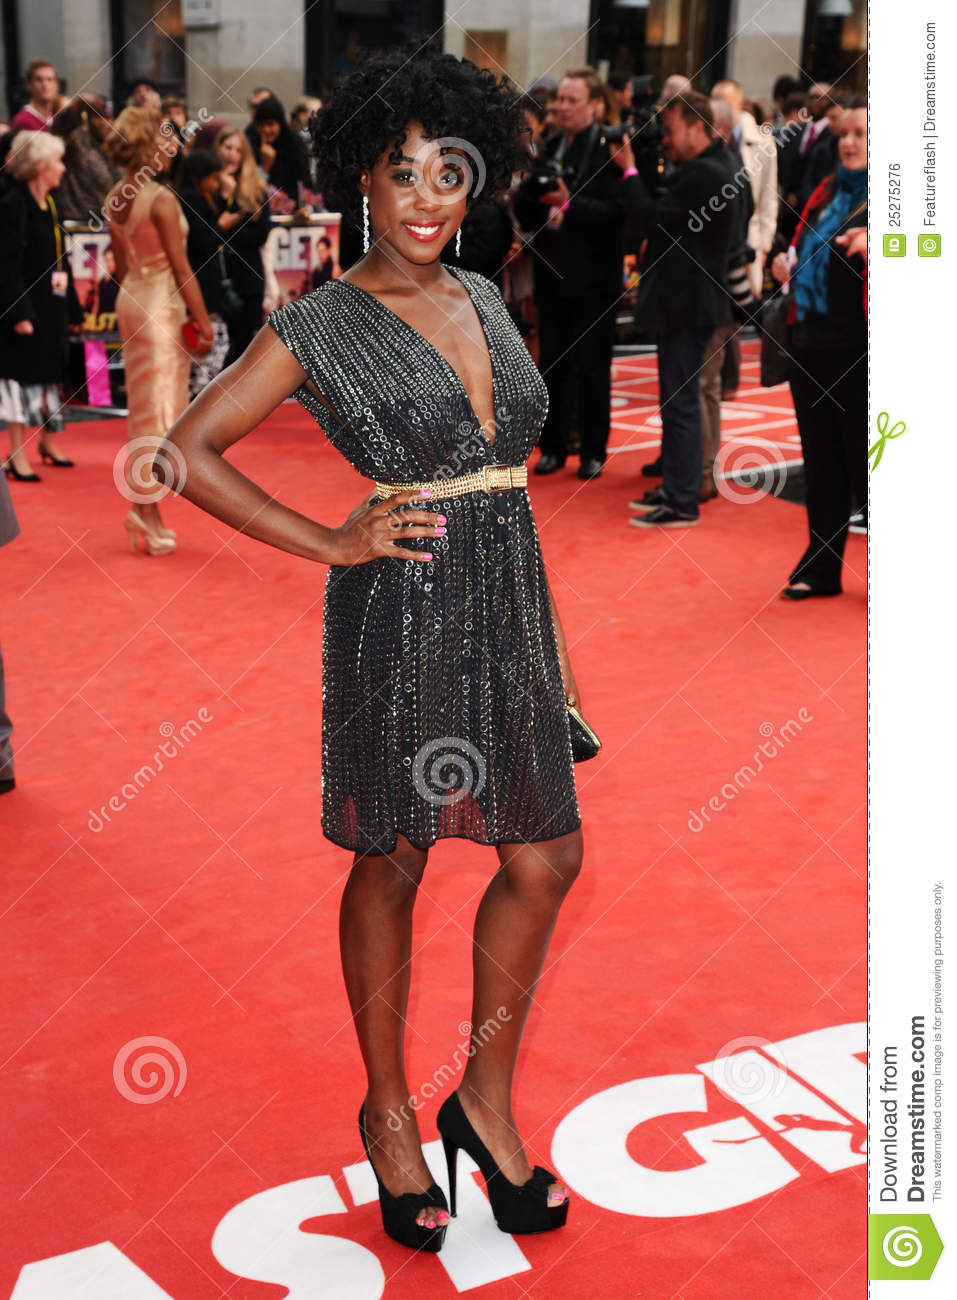 Lashana Lynch Lashana Lynch new photo